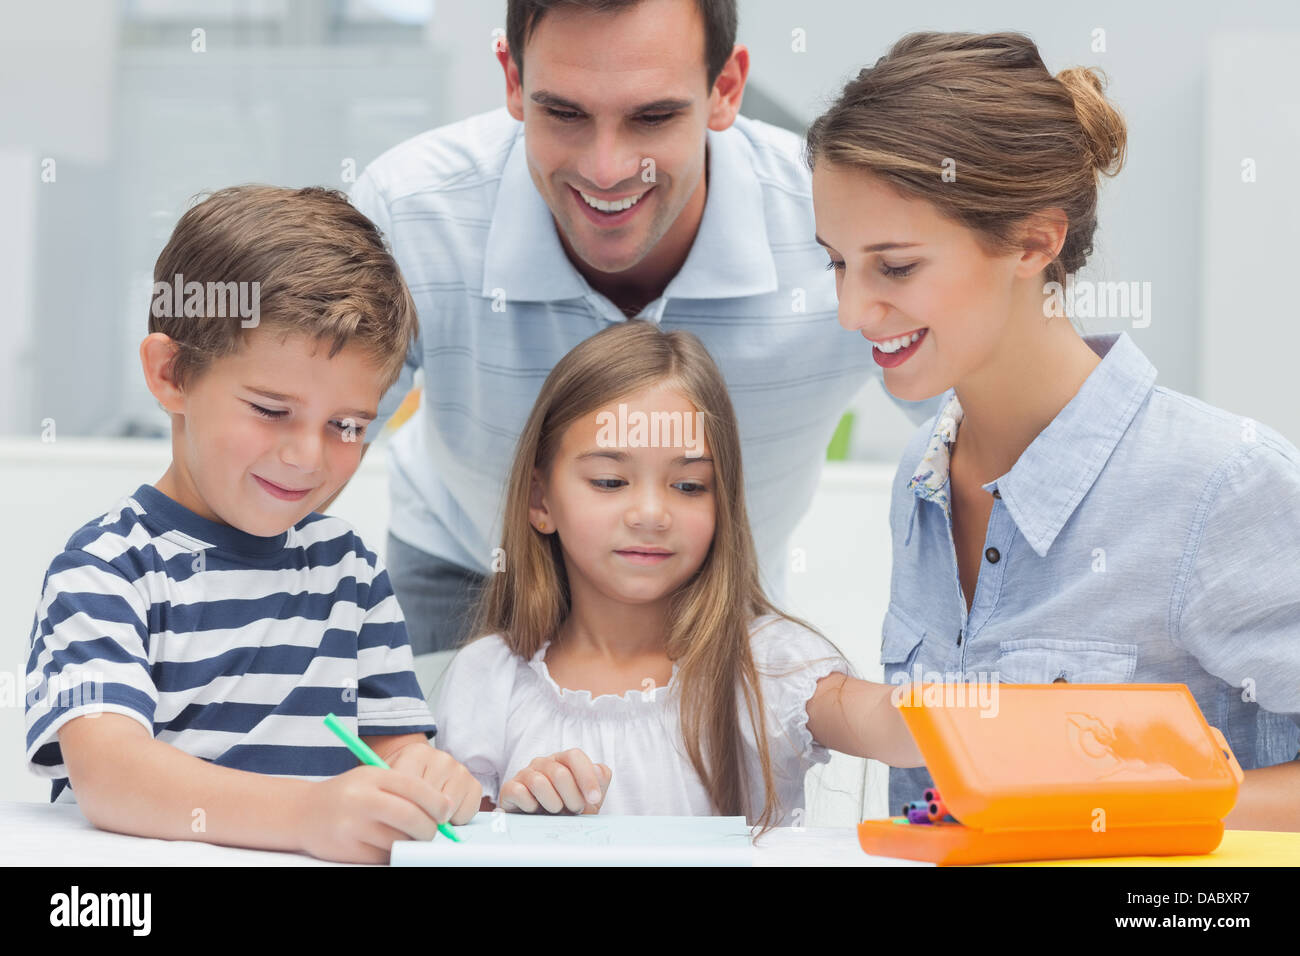 Parents looking at their children drawing - Stock Image